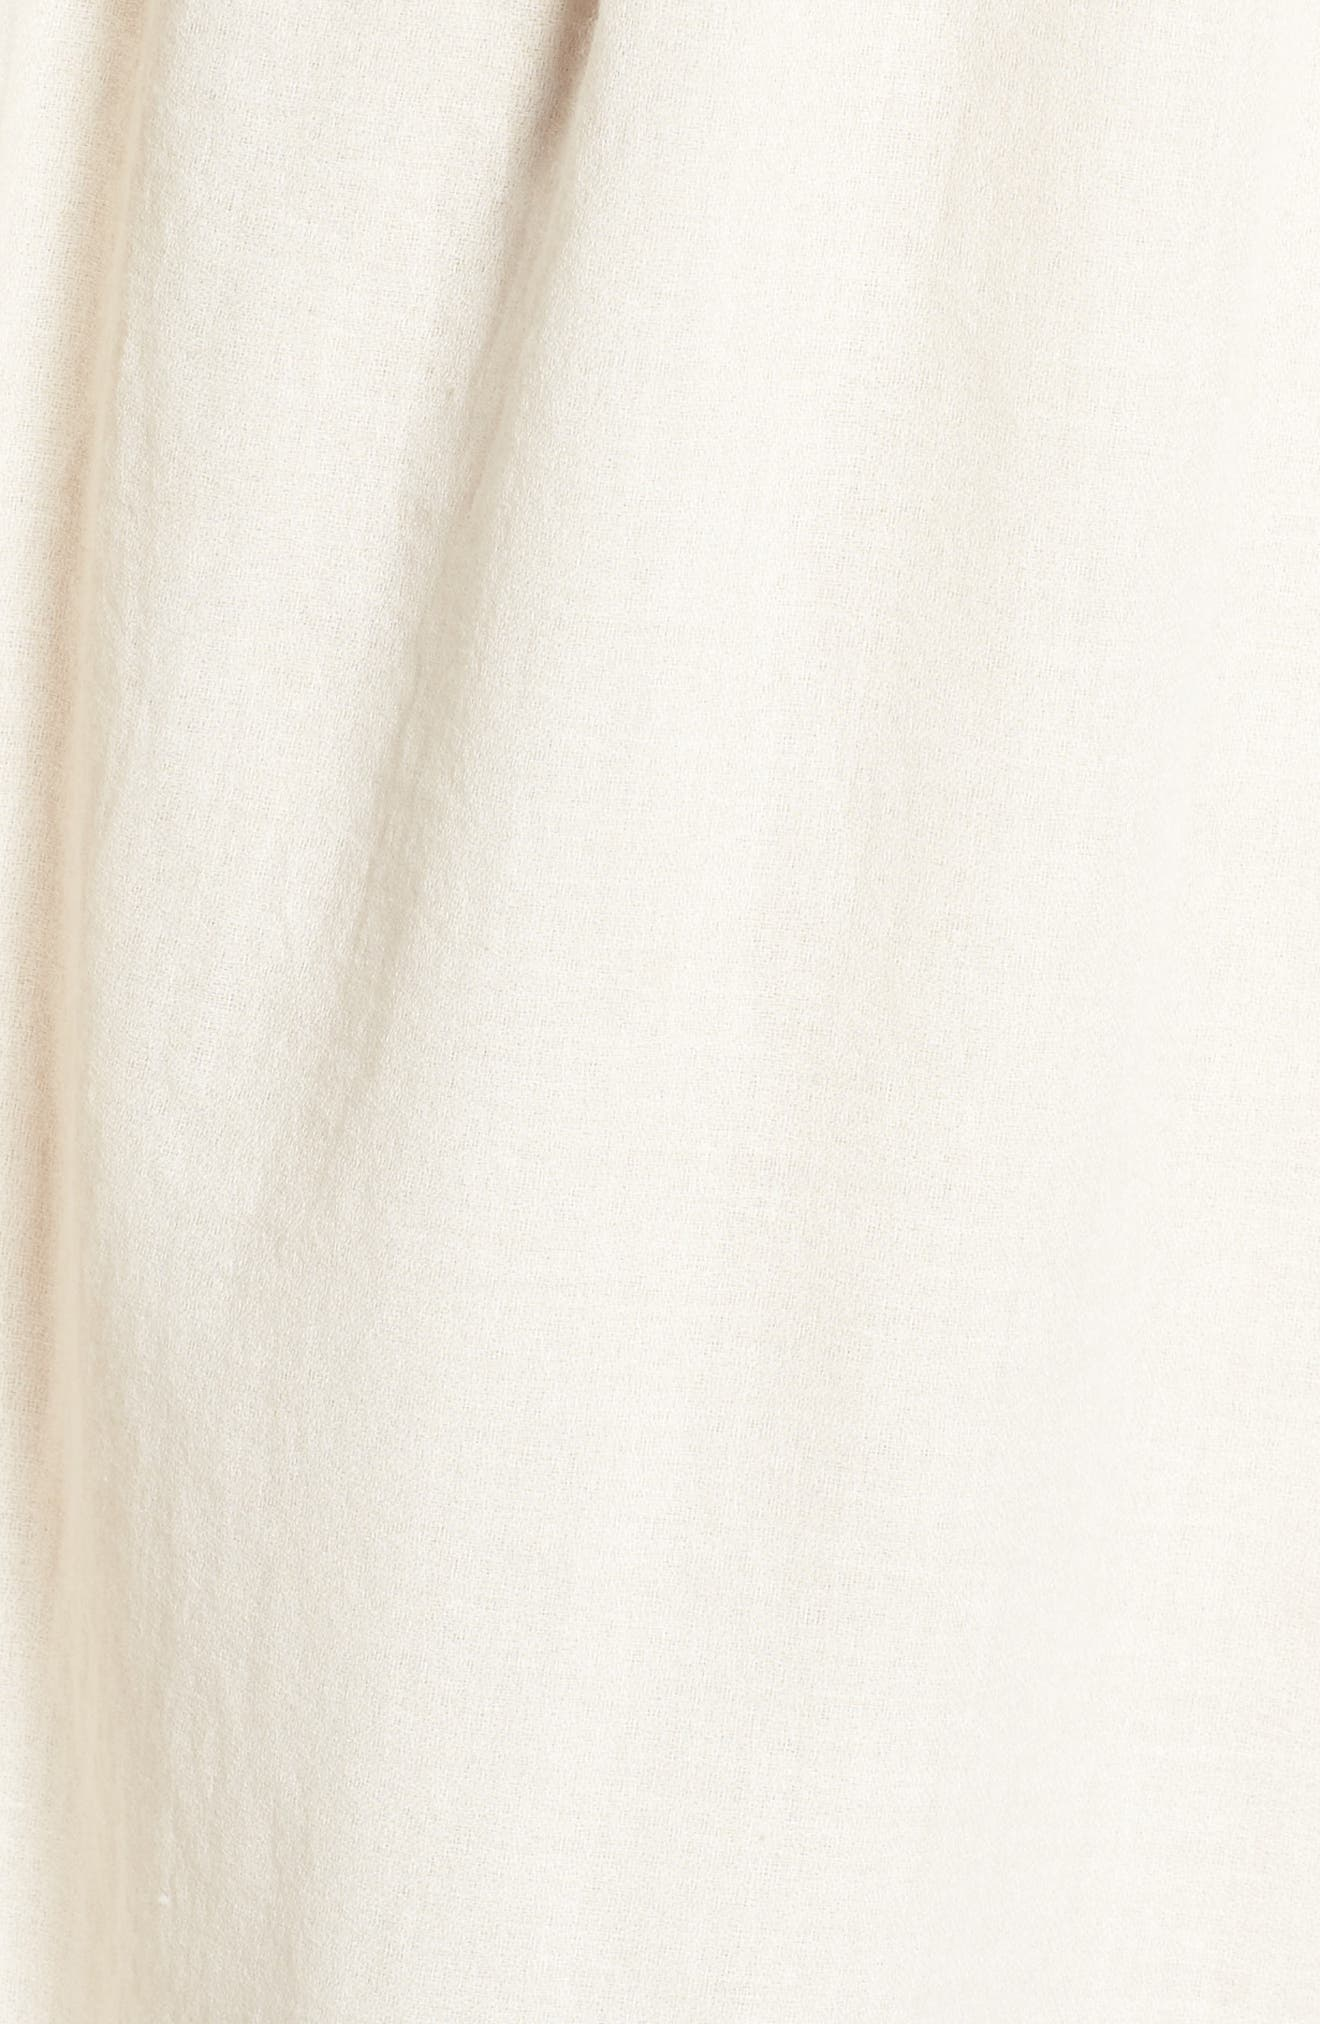 Embroidered Shift Dress,                             Alternate thumbnail 5, color,                             110